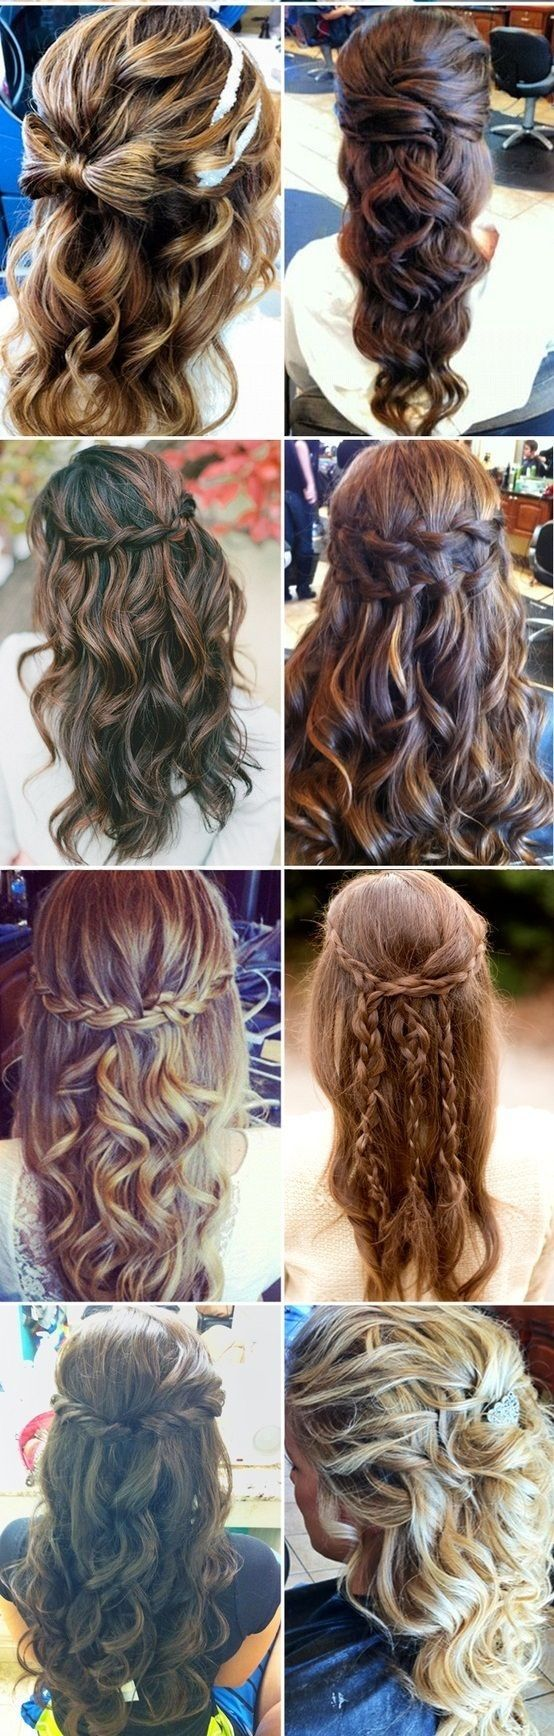 Cute Hairstyles for a wedding or even a sweet sixteen Quincenera